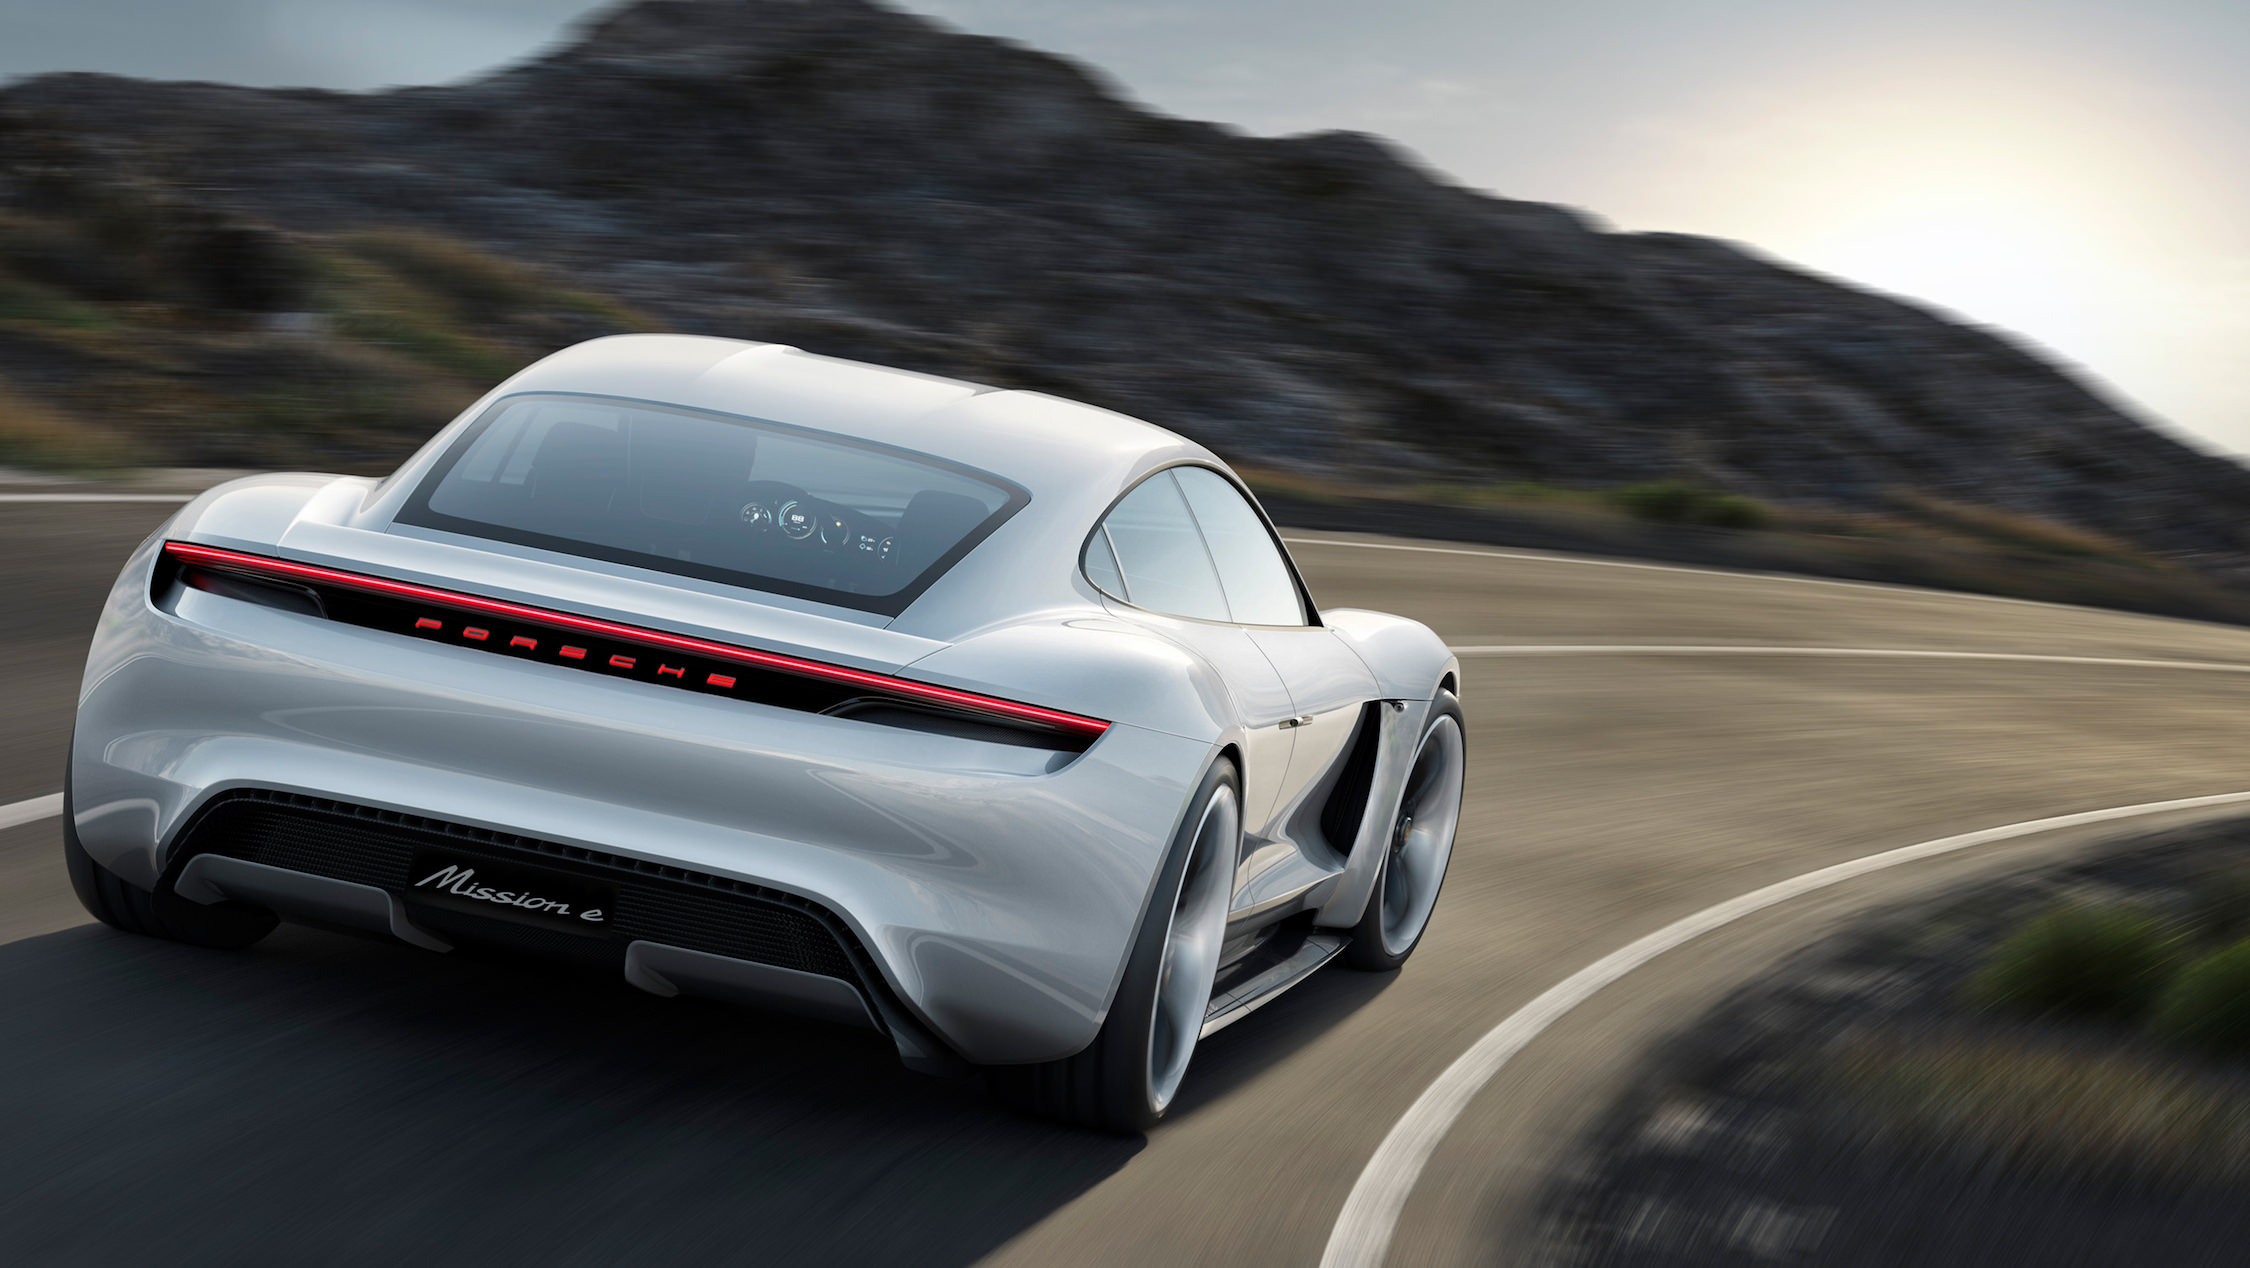 high_mission_e_concept_car_2015_porsche_ag-2